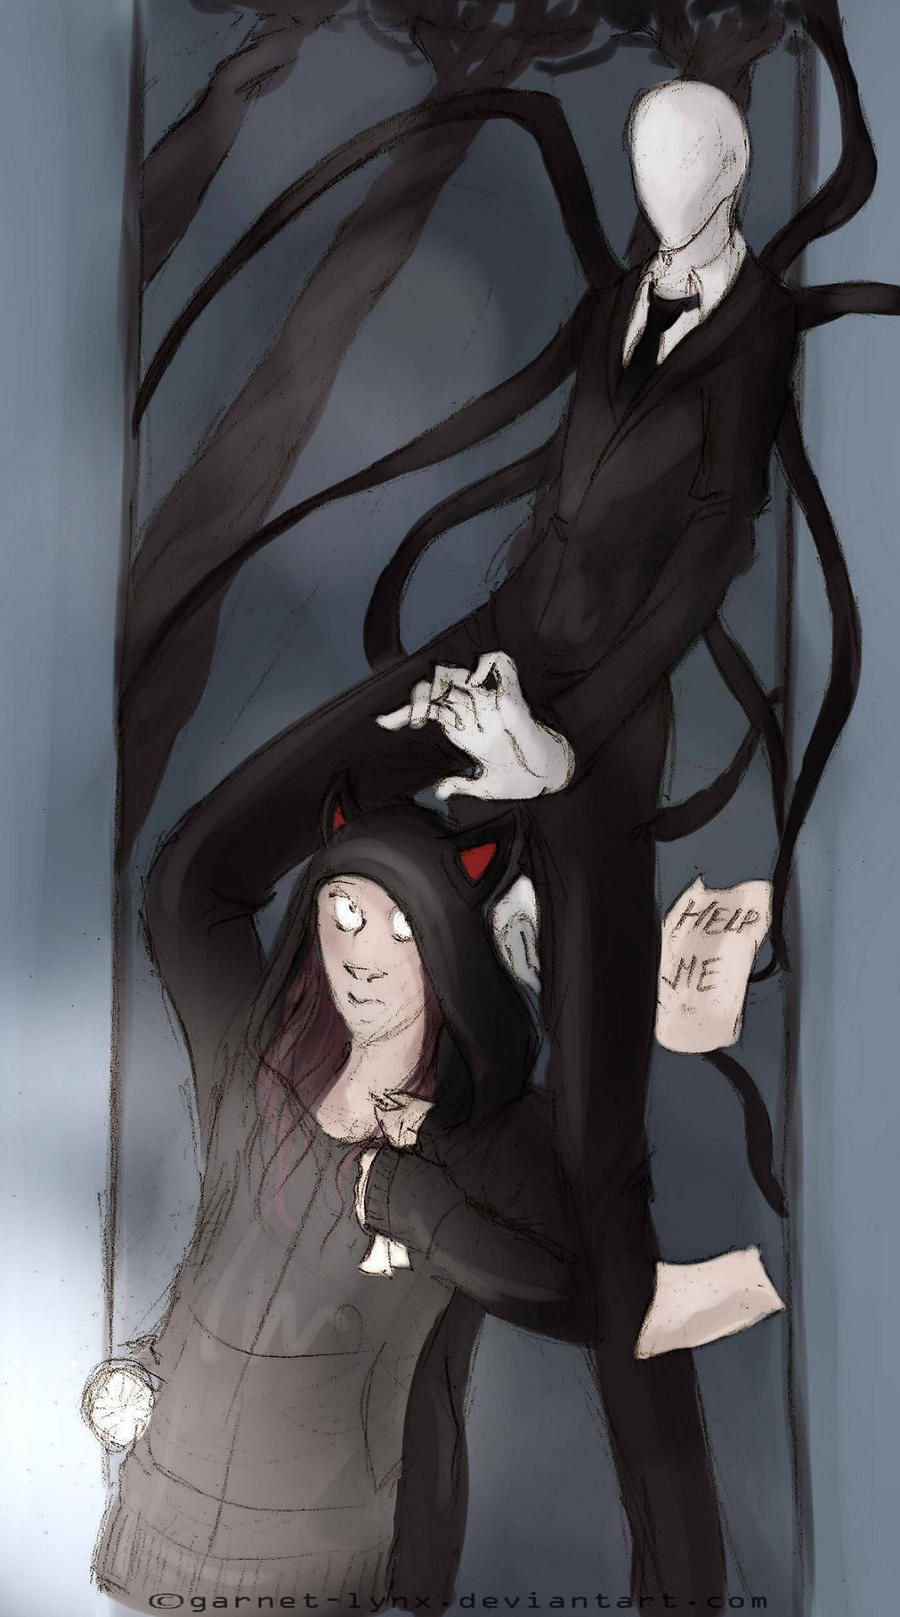 Friendly neighborhood Slenderman by garnet-lynx